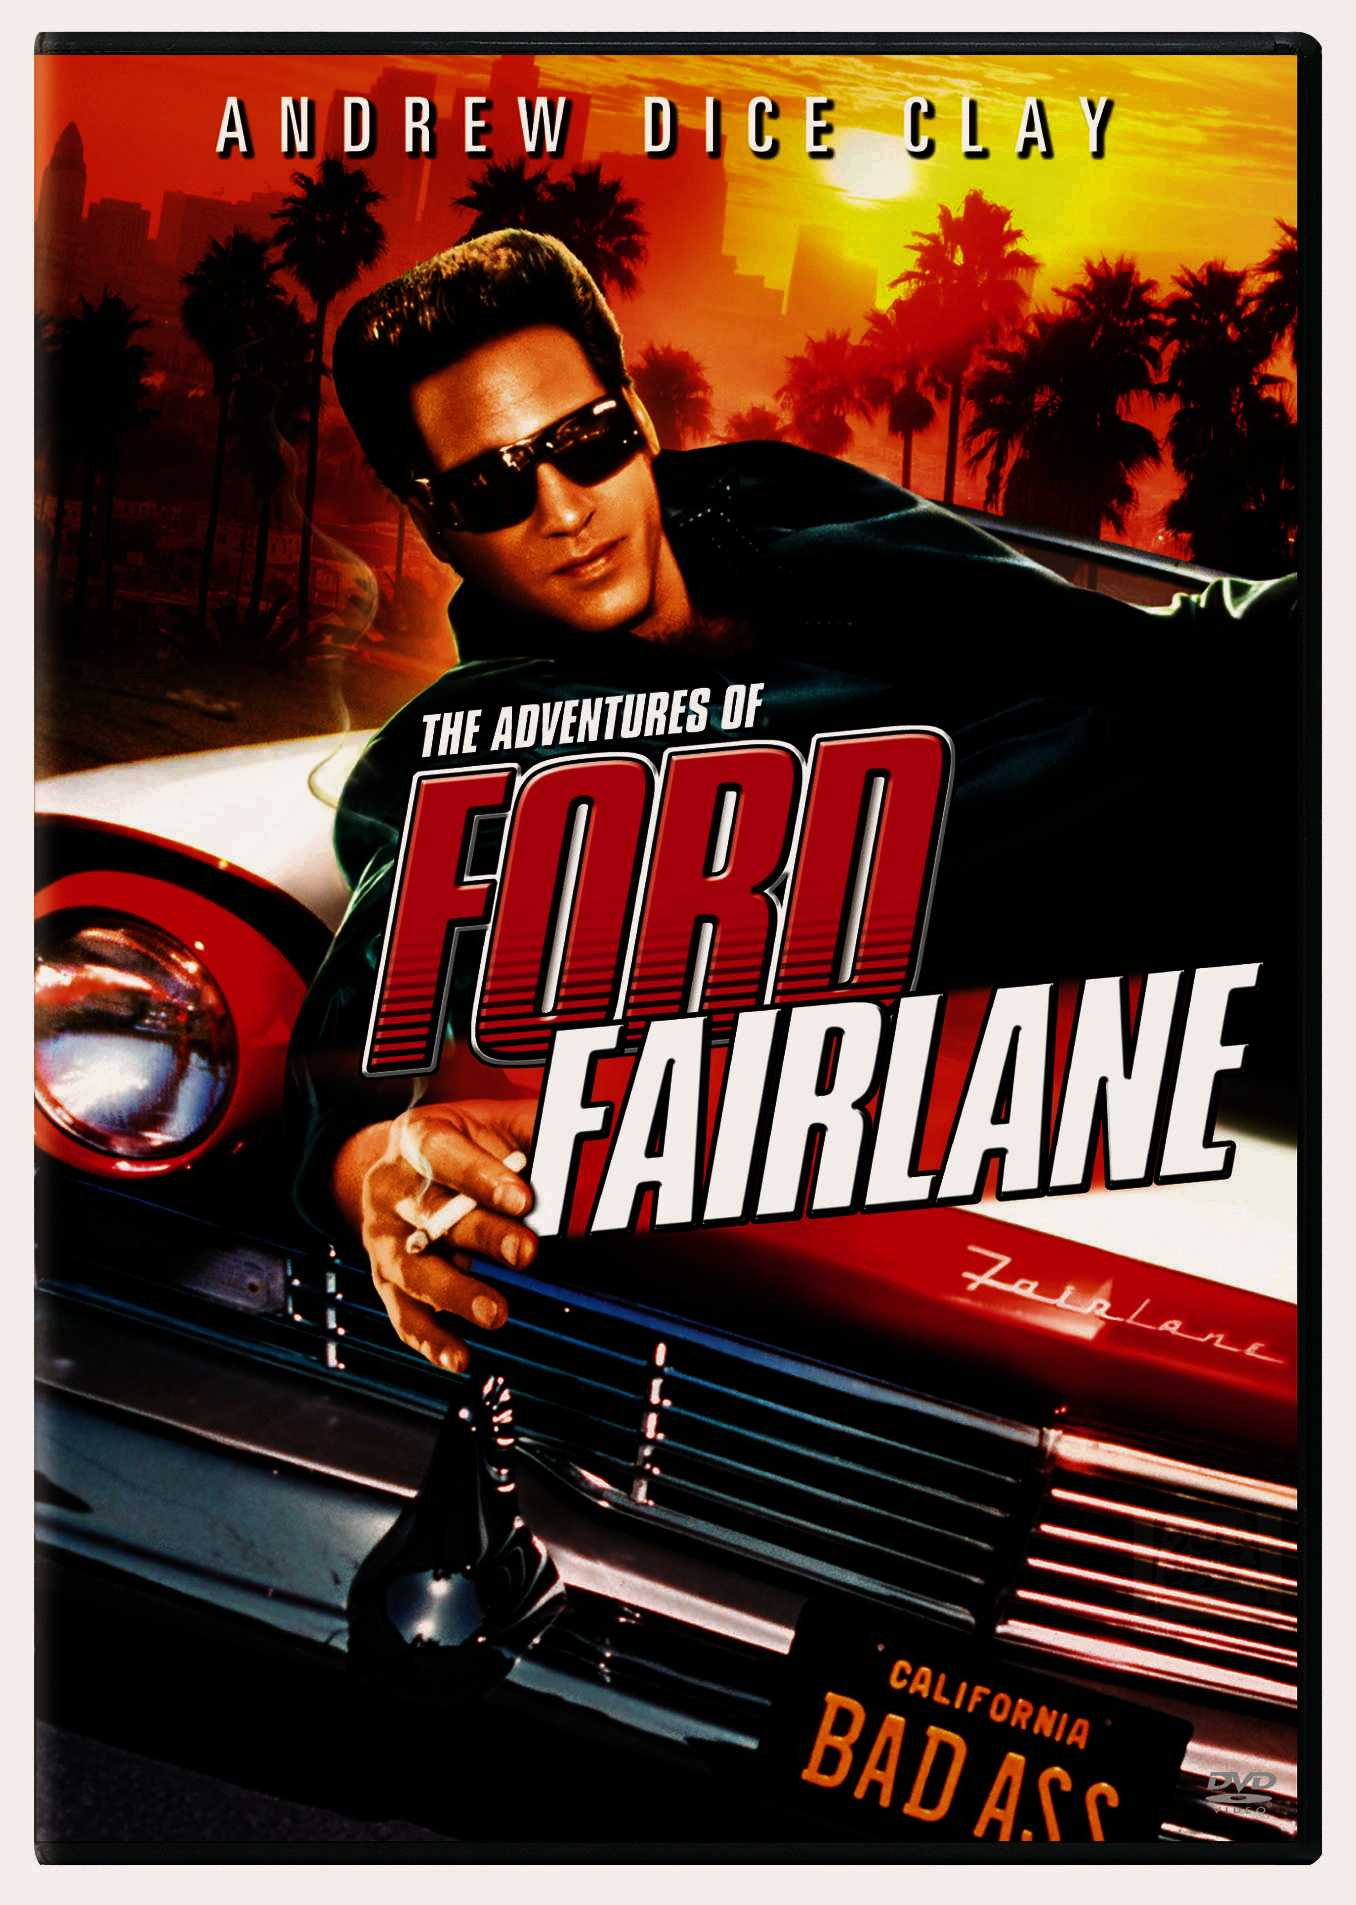 Adventures Of Ford Fairlane By Clay Andrew Dice Dvd